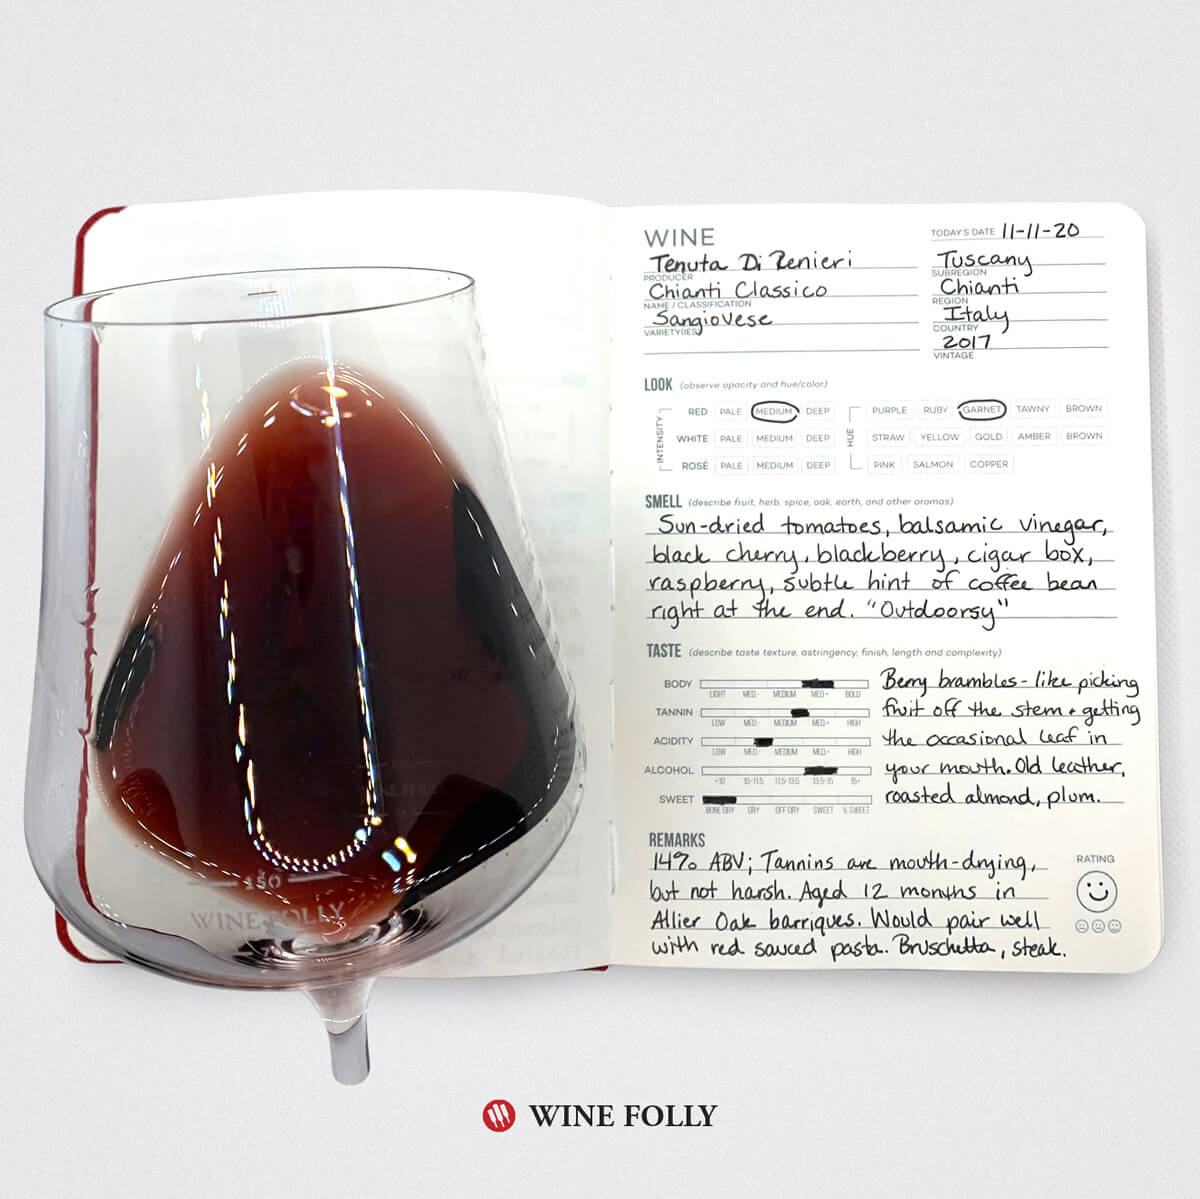 wine-glass-over-journal-tasting-notes-sangiovese